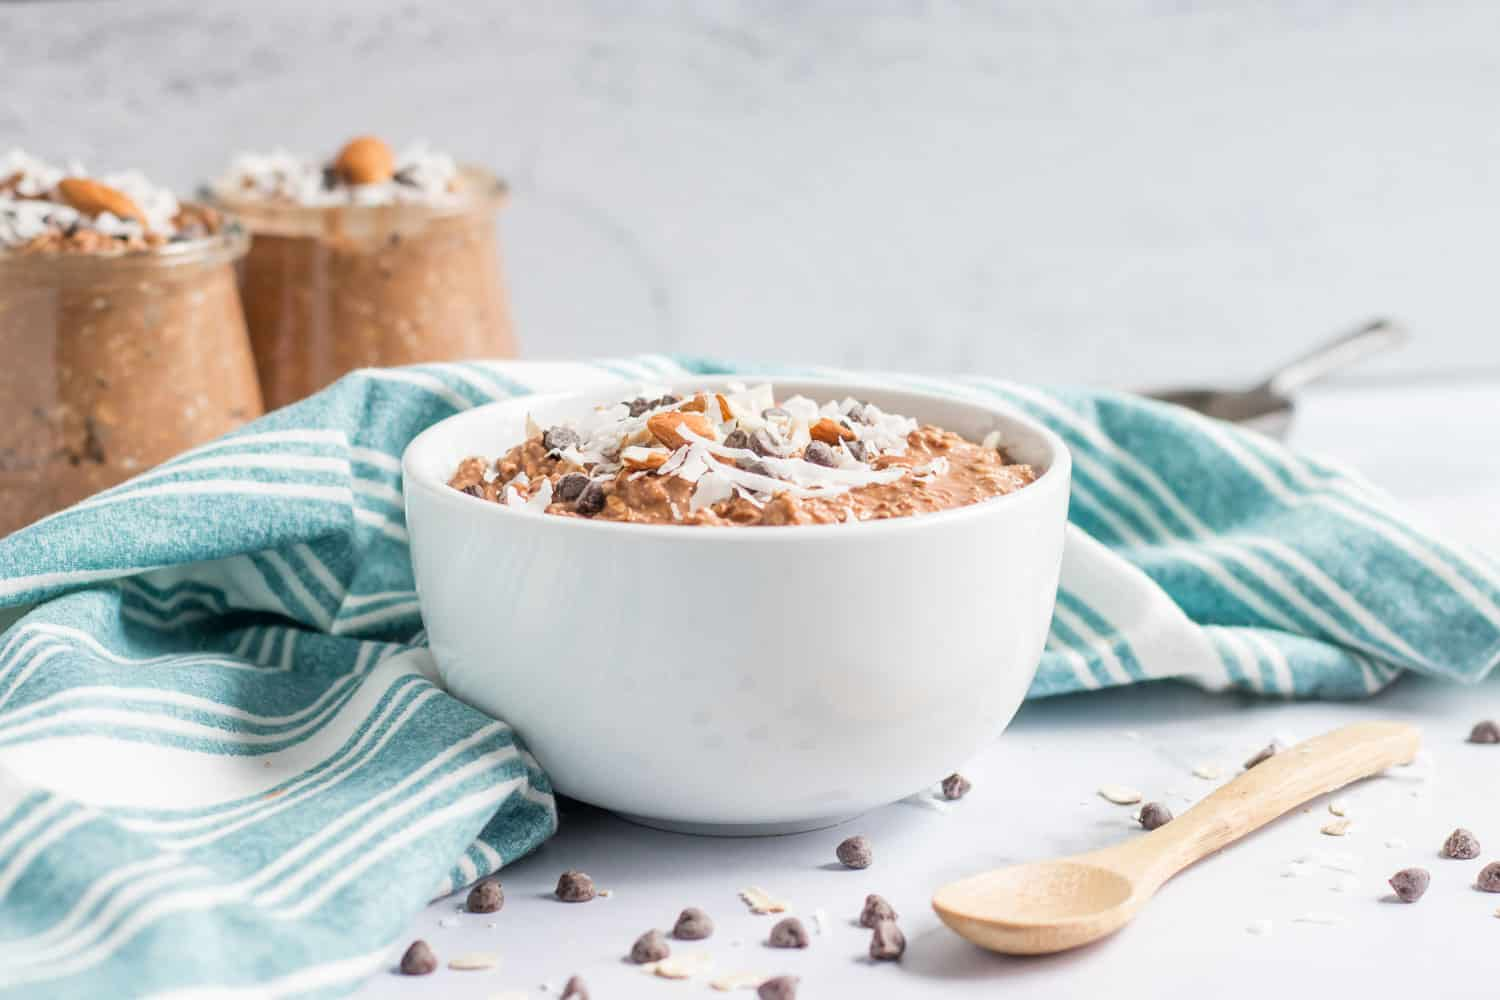 White bowl with almond joy overnight oats and jars in background.